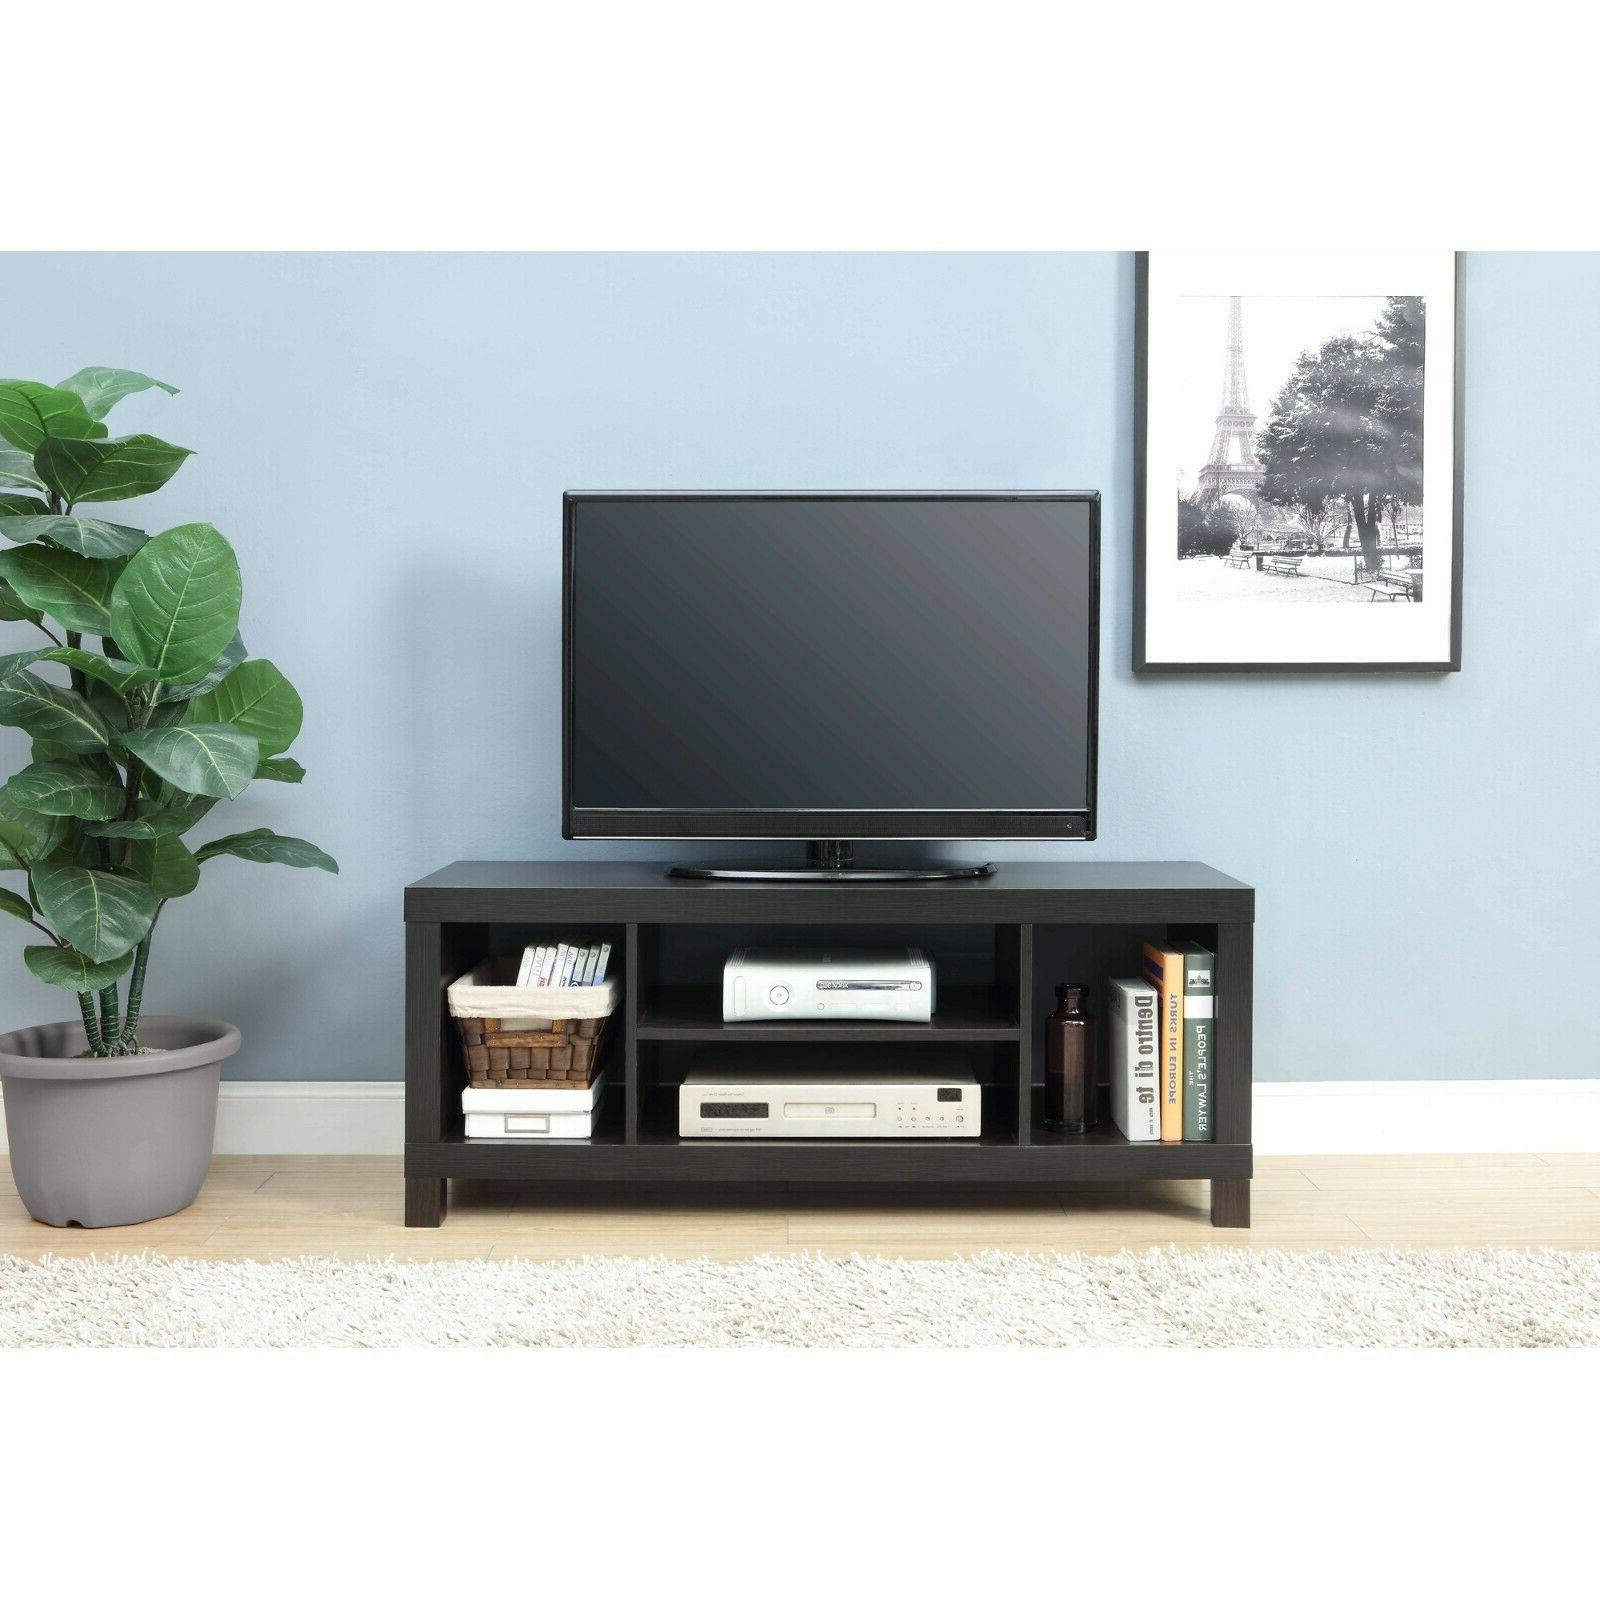 Home Center Wood Storage Cabinet TV Console